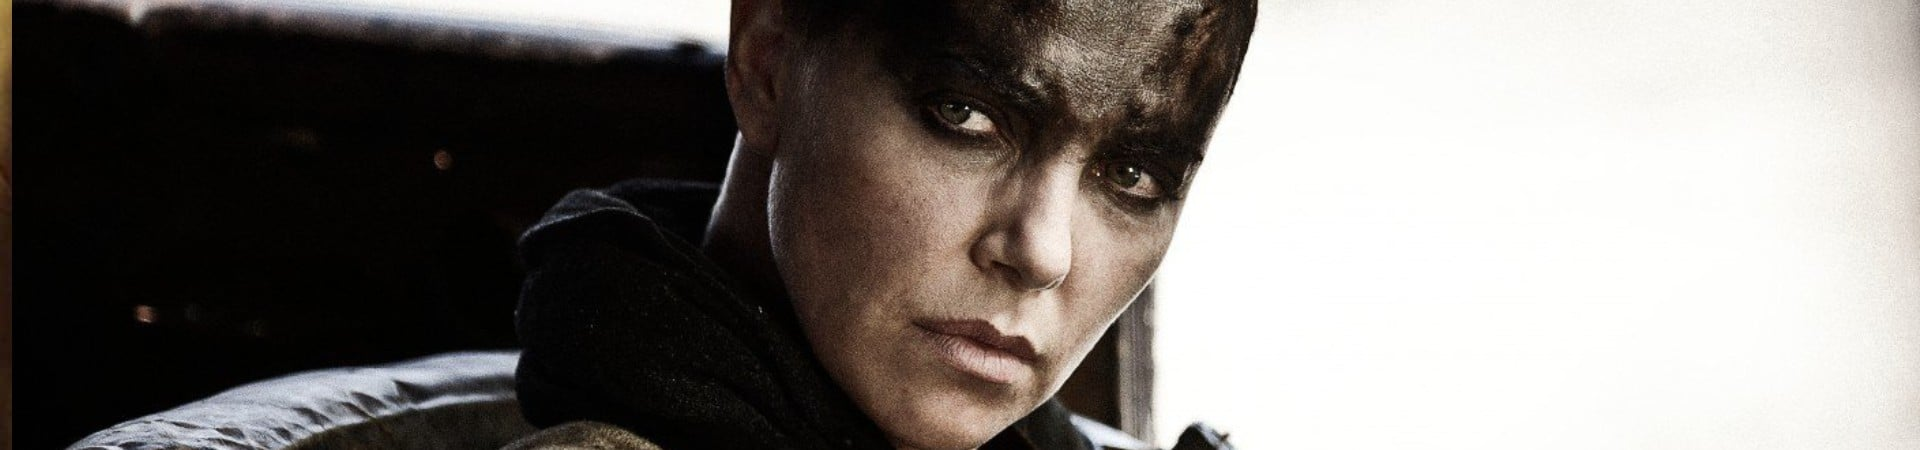 """Charlize Theron as """"Furious"""", character from """"Mad Max"""" who will win his own movie"""